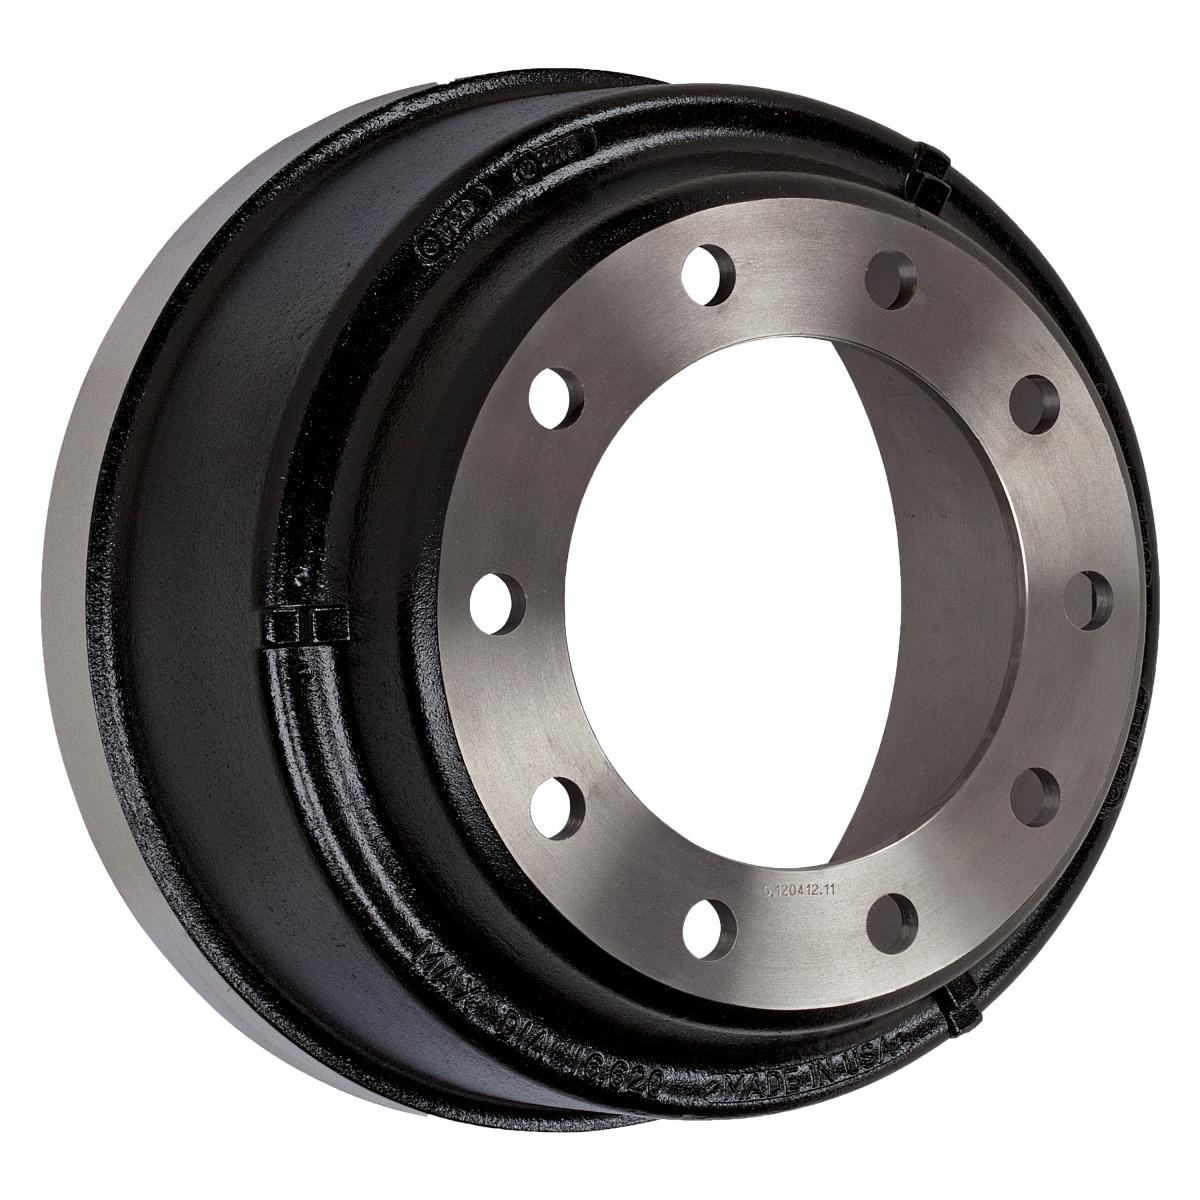 Gunite Value Plus Brake Drums